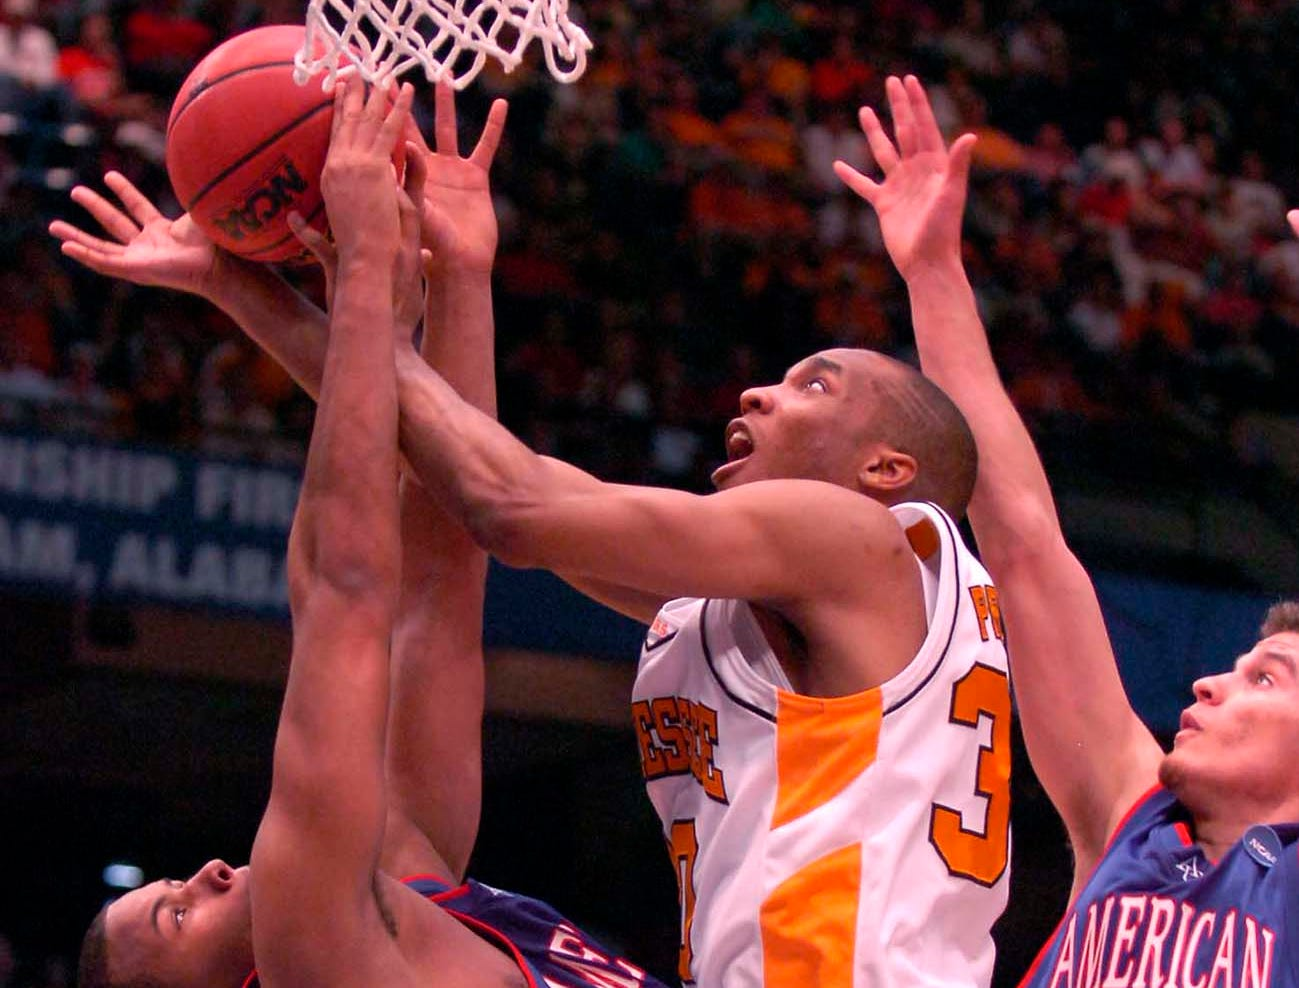 Tennessee's J.P. Prince takes a shot tangled up with American University's Romone Penny and Frank Borden during first round competition of the 2008 NCAA Tournament in Birmingham on Friday. Tennessee won the game 72-57 and advance to play the winner of Butler vs. South Alabama.